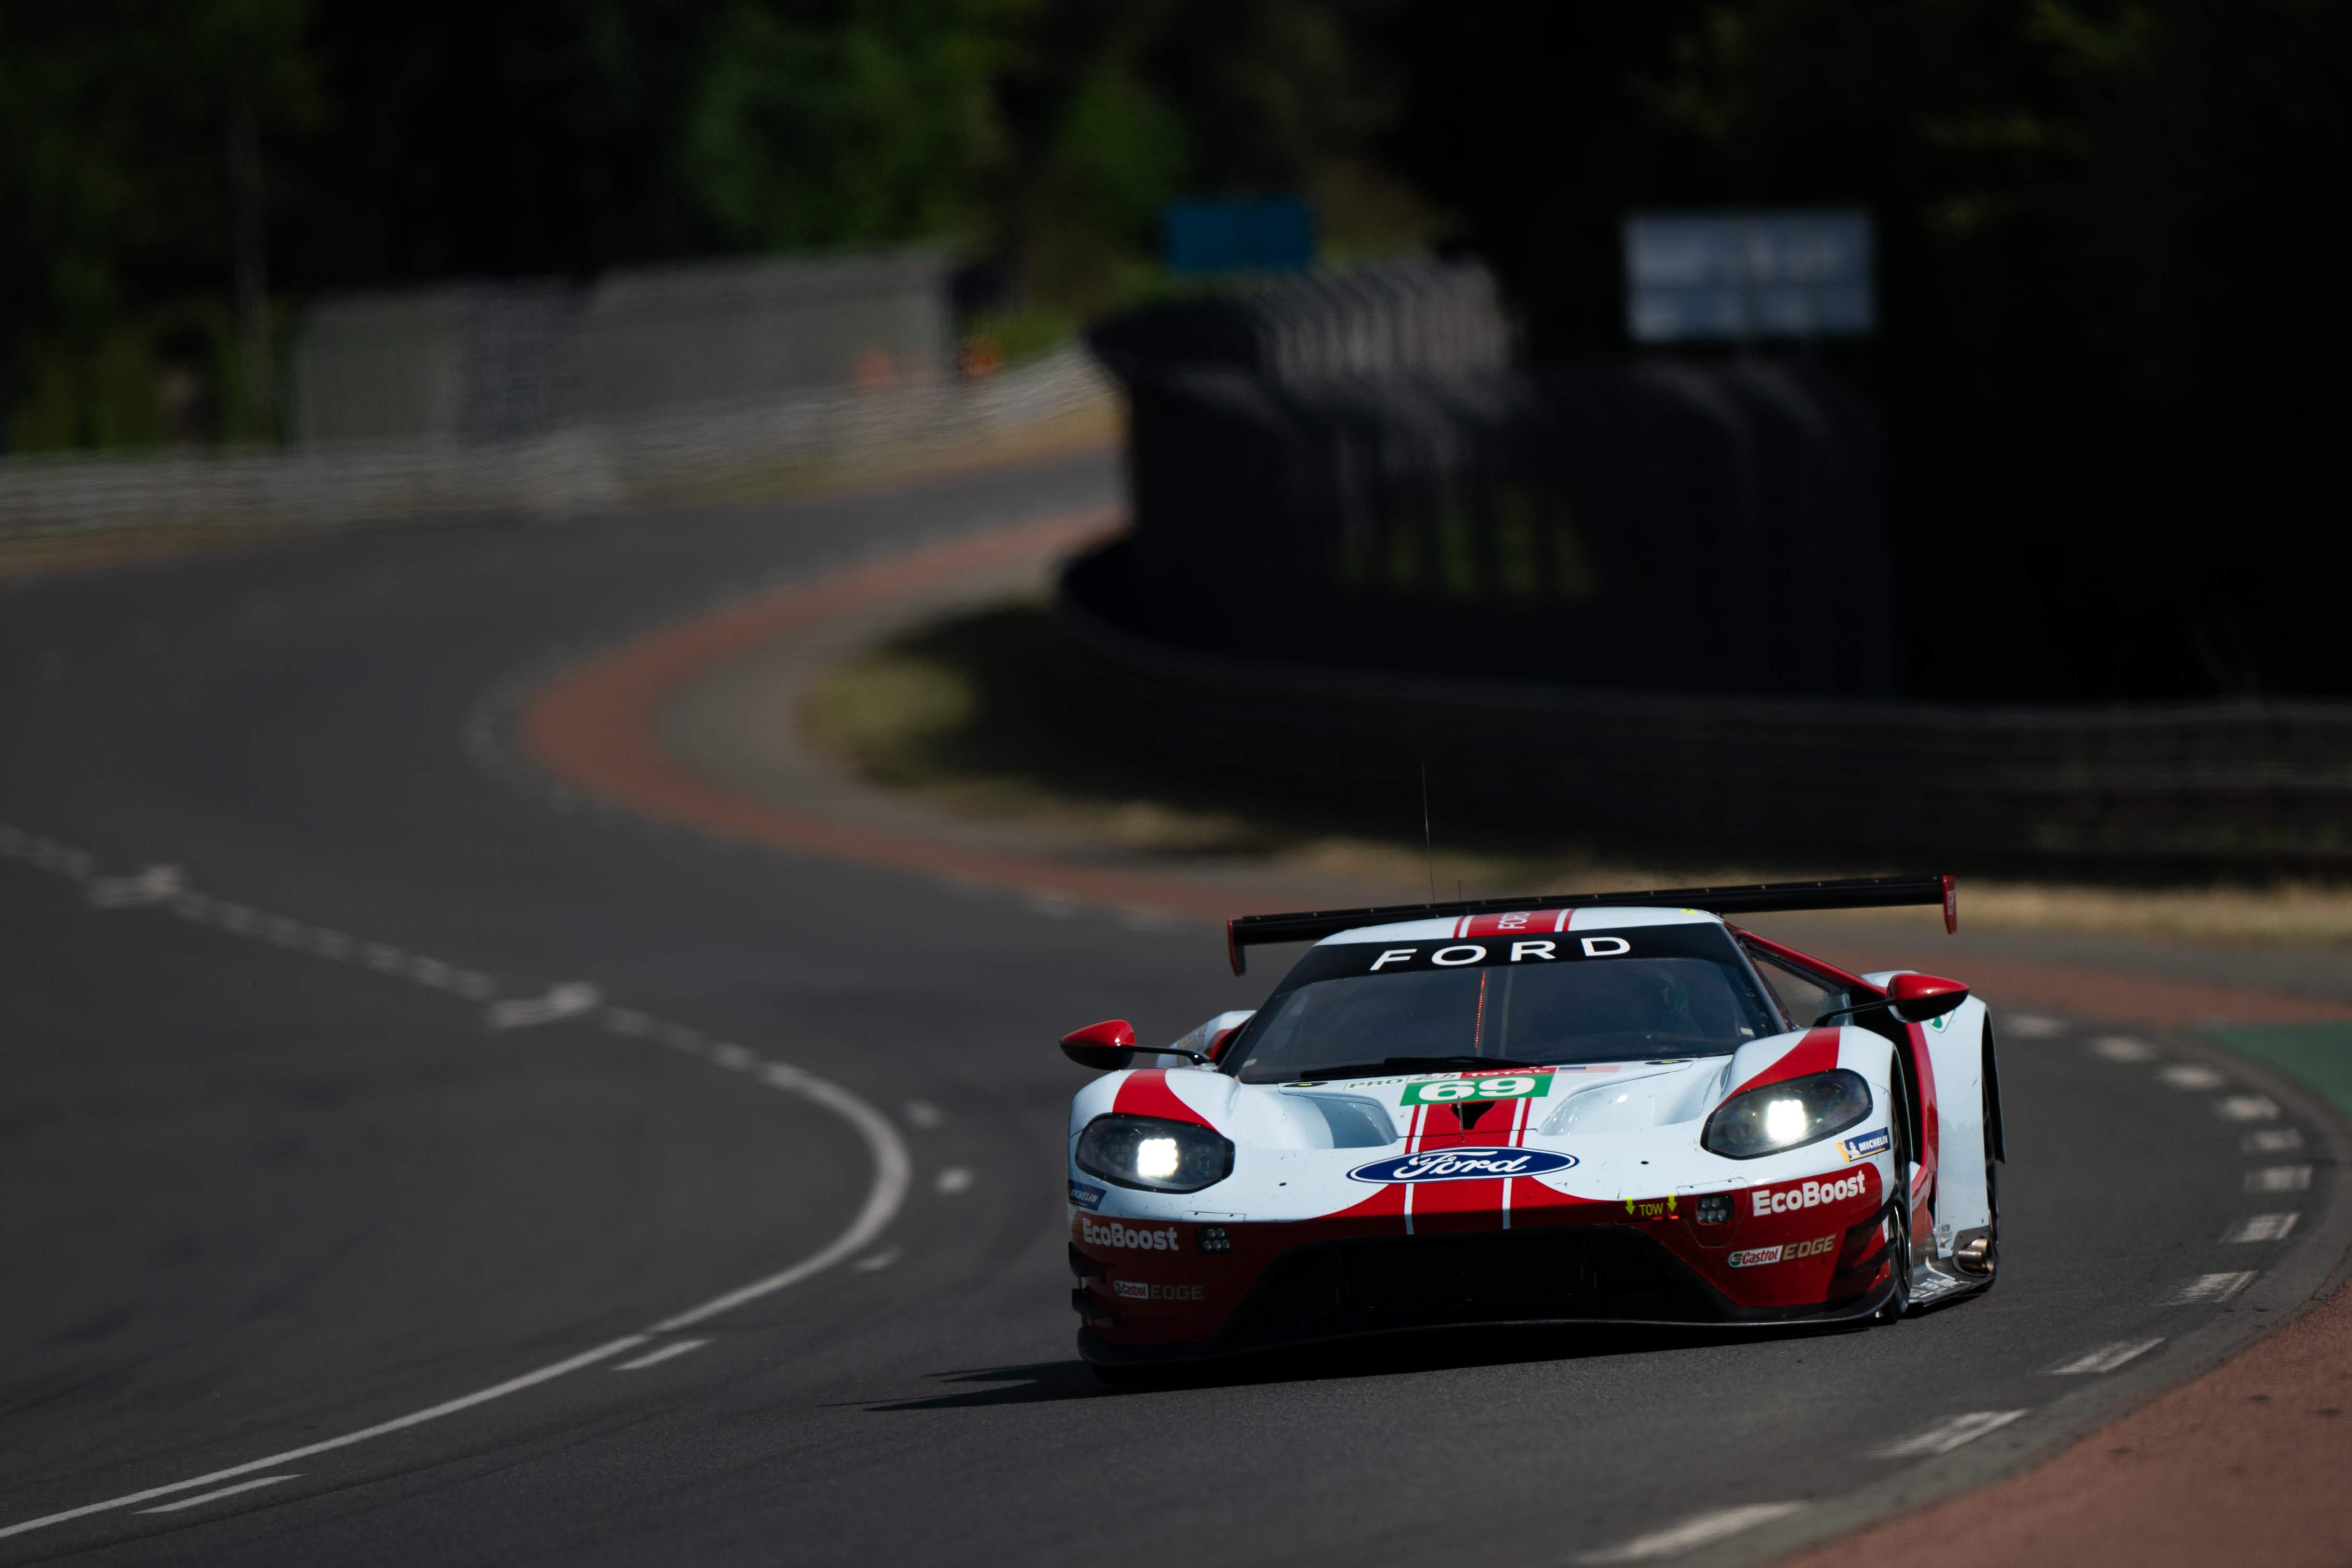 69 Ford GT - Le Mans Test 2019